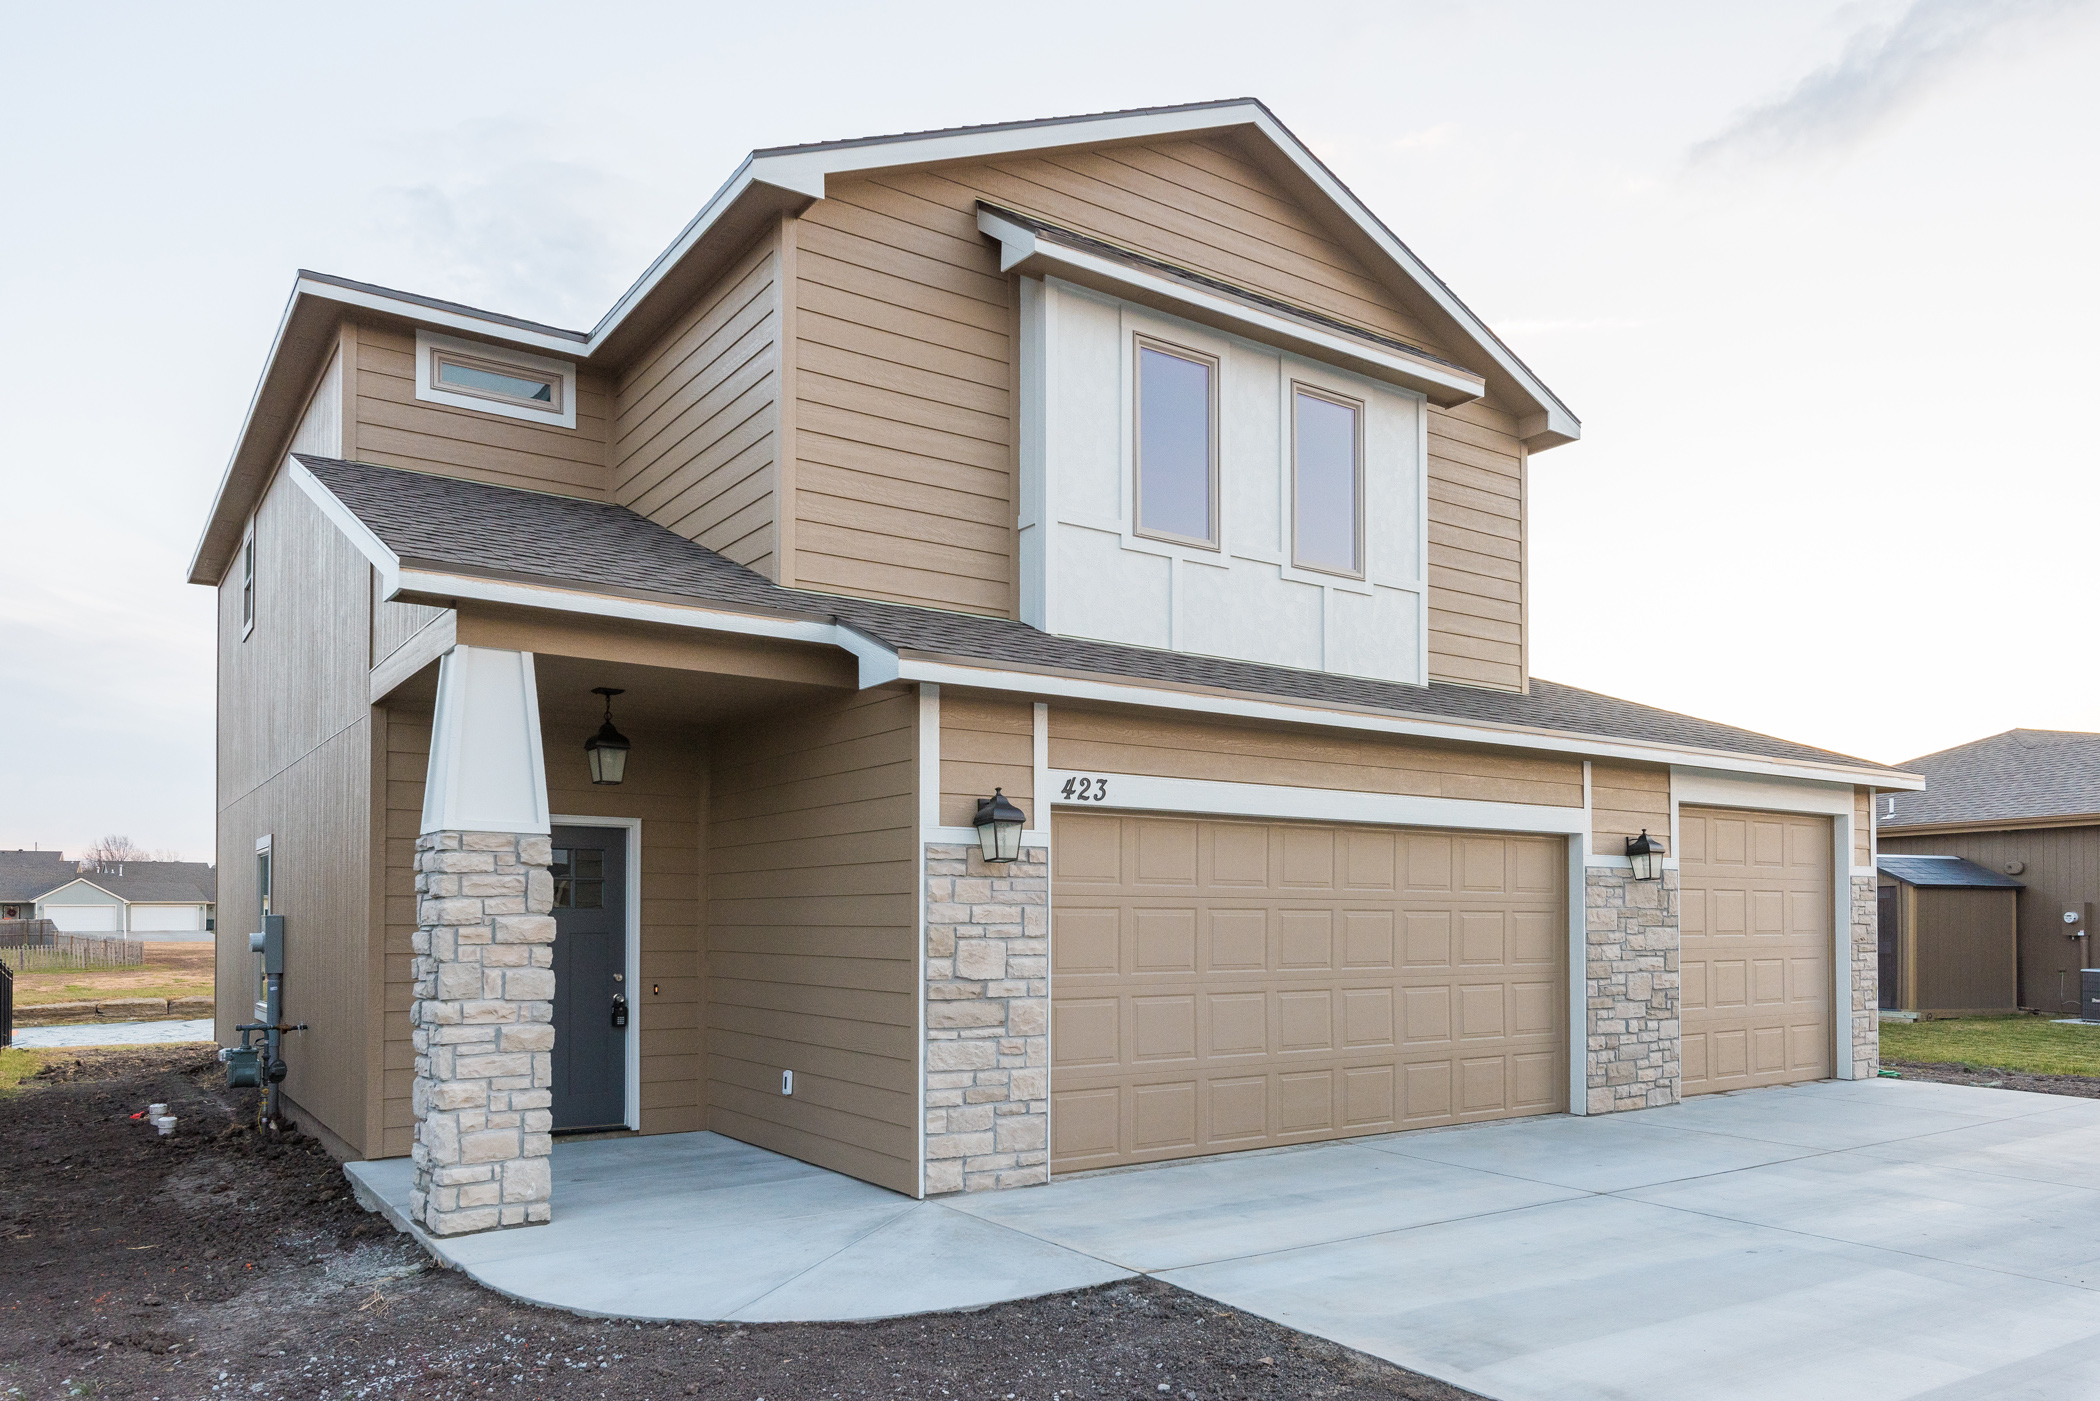 OPEN HOUSE U2013 BRAND NEW 2 Story With 5 Bedrooms U0026 Lake ...